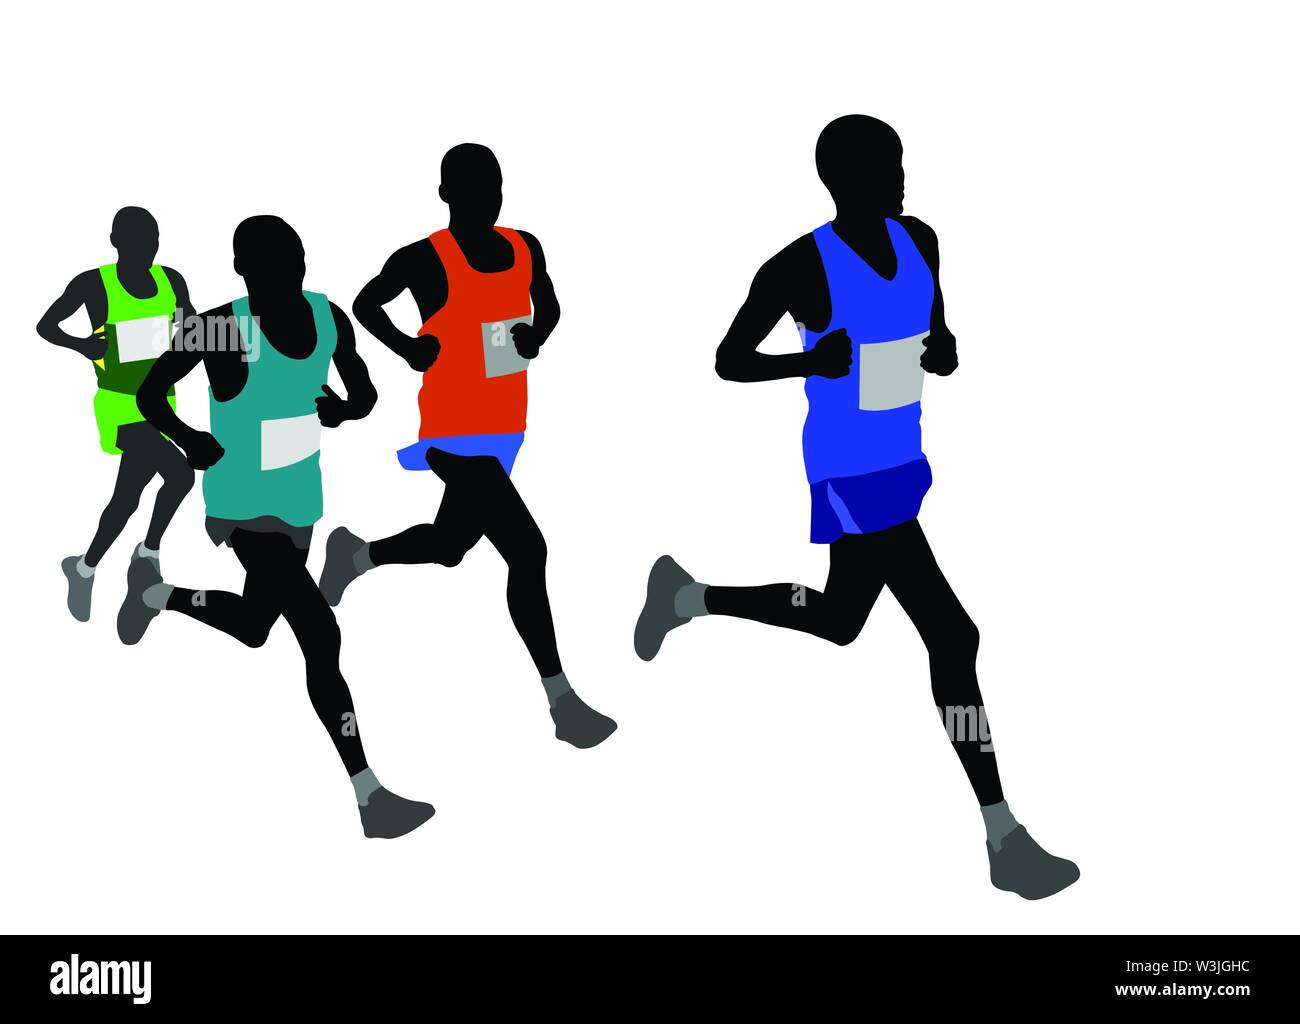 group of marathon runners silhouettes - vector Stock Vector